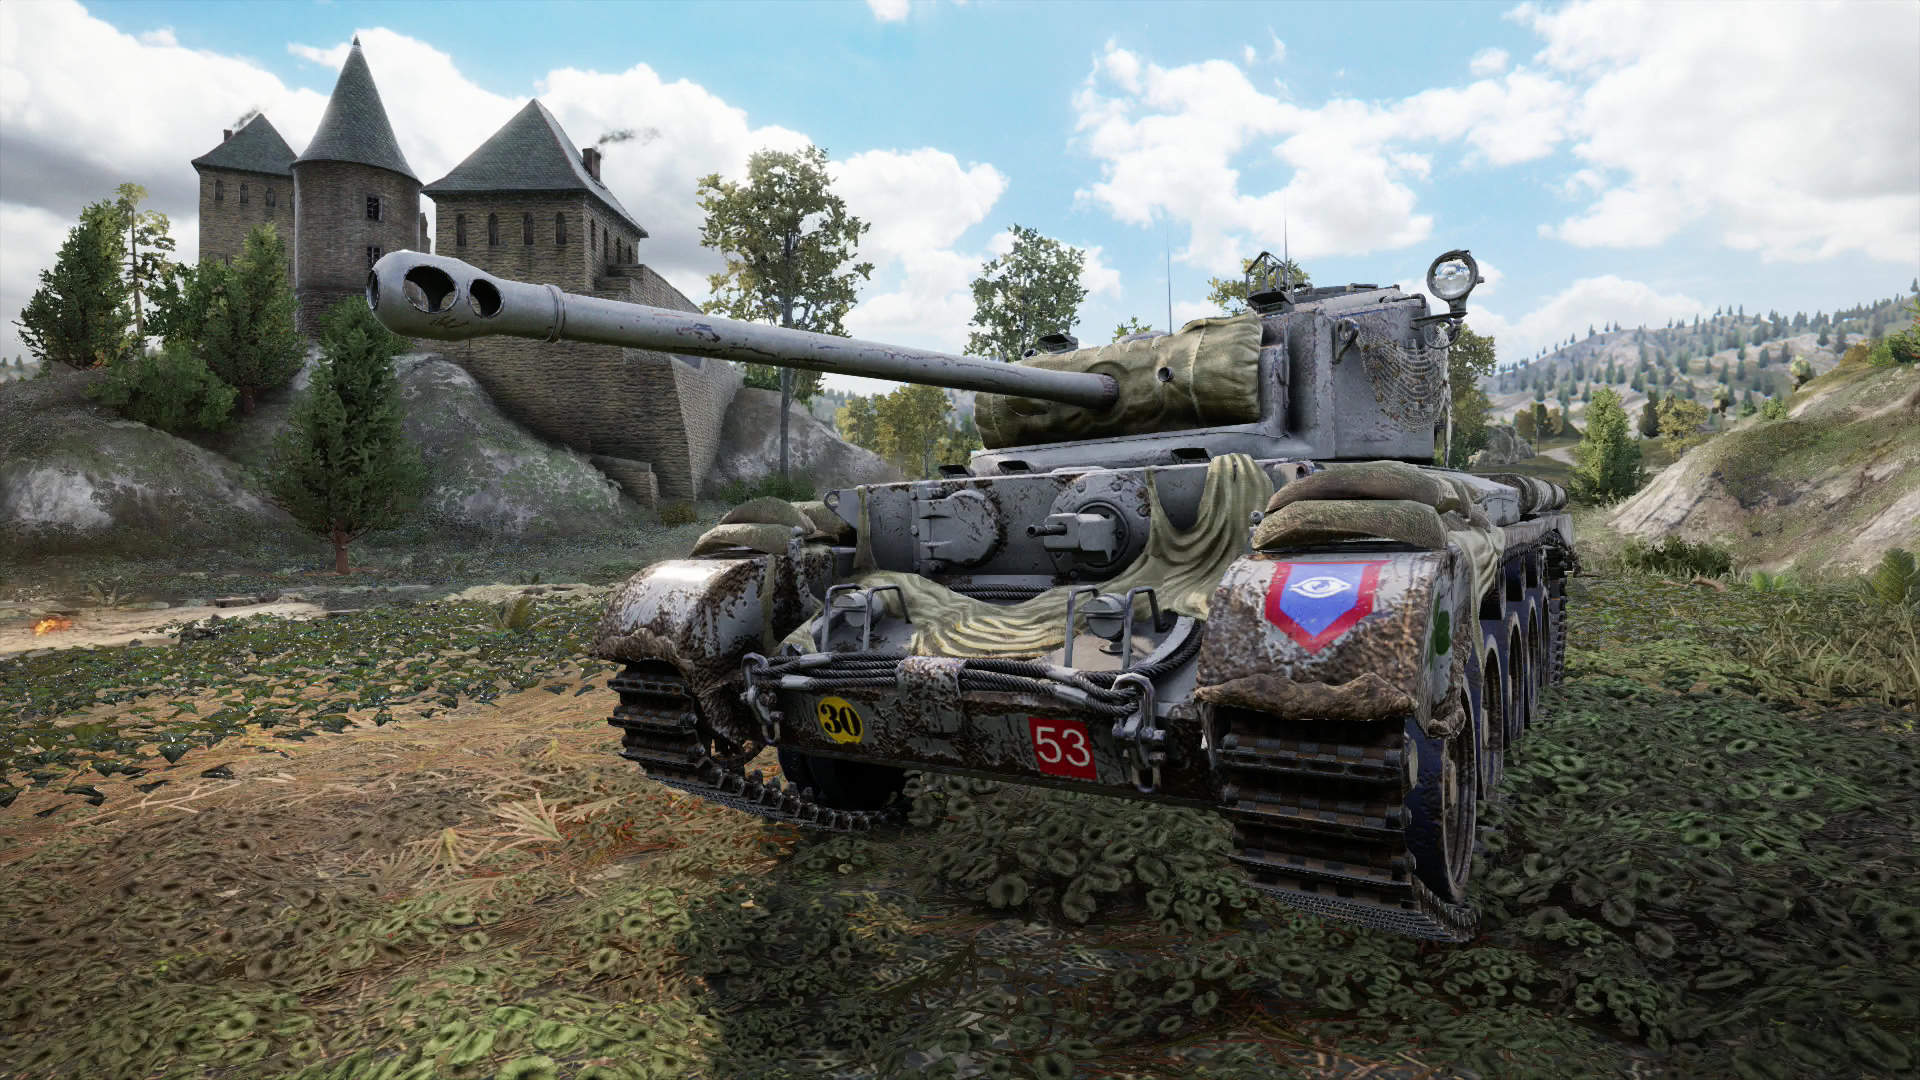 http://www.idgtv.es/archivos/201803/world-of-tanks-banshee-comet-img2.jpg